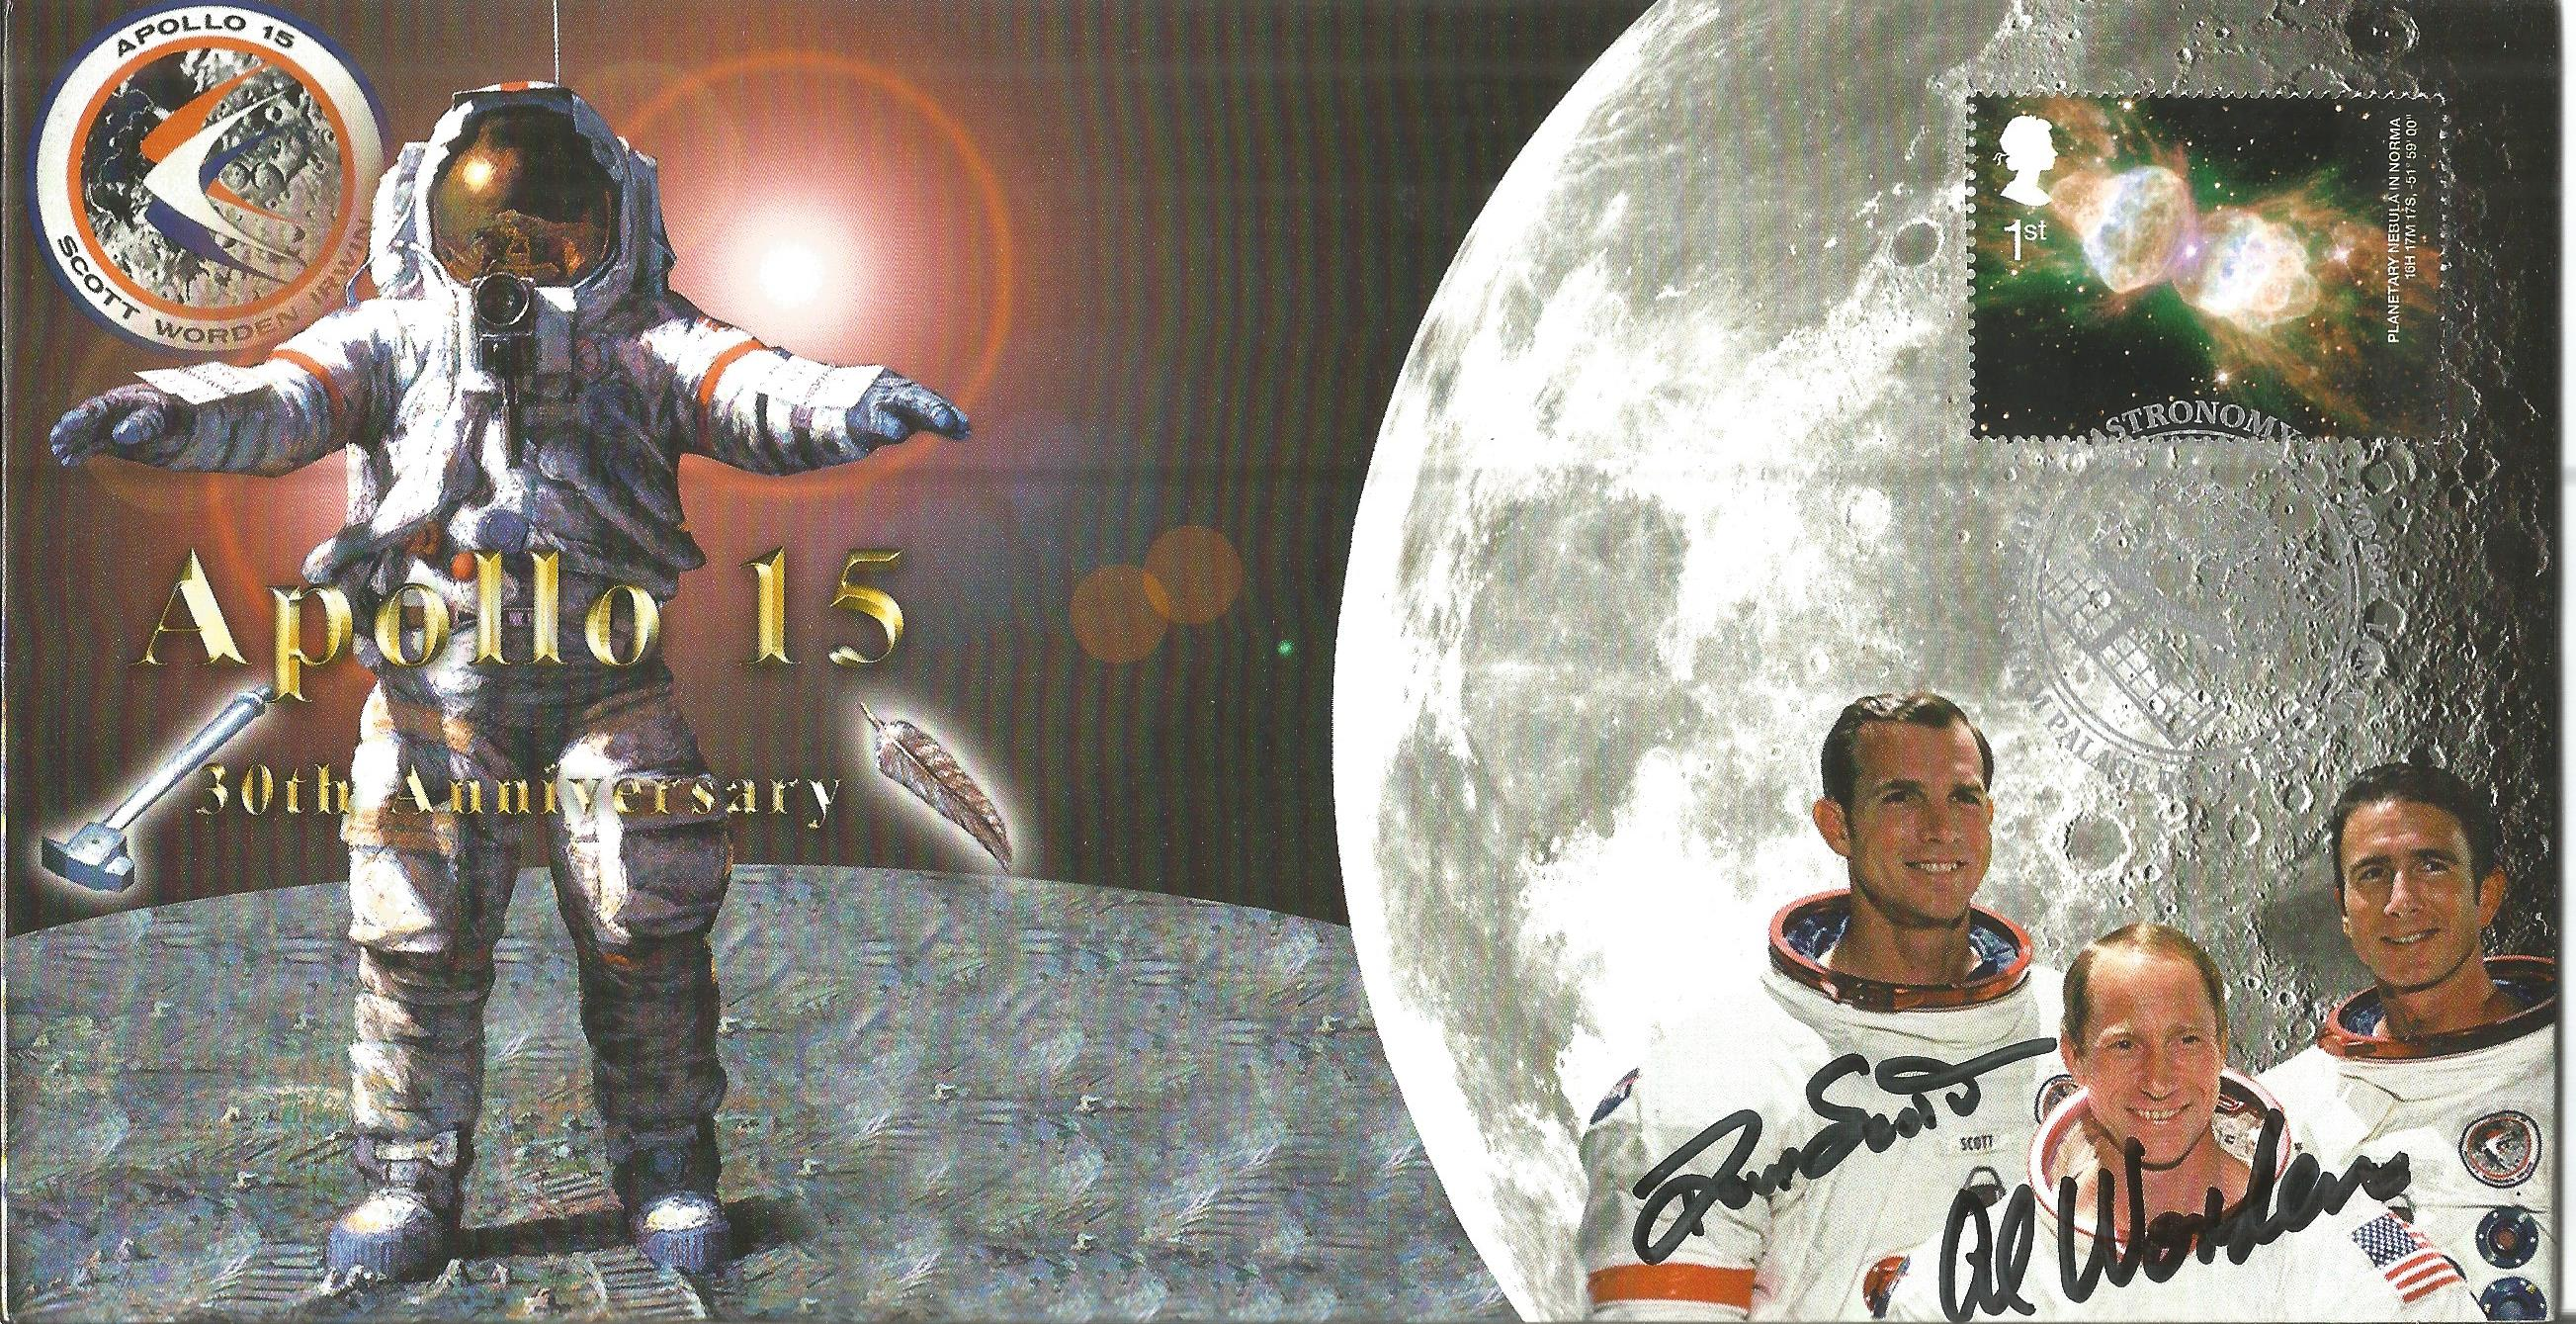 Space Moonwalker Dave Scott and Al Worden NASA Astronaut signed 2002 Apollo 15 Limited Edition